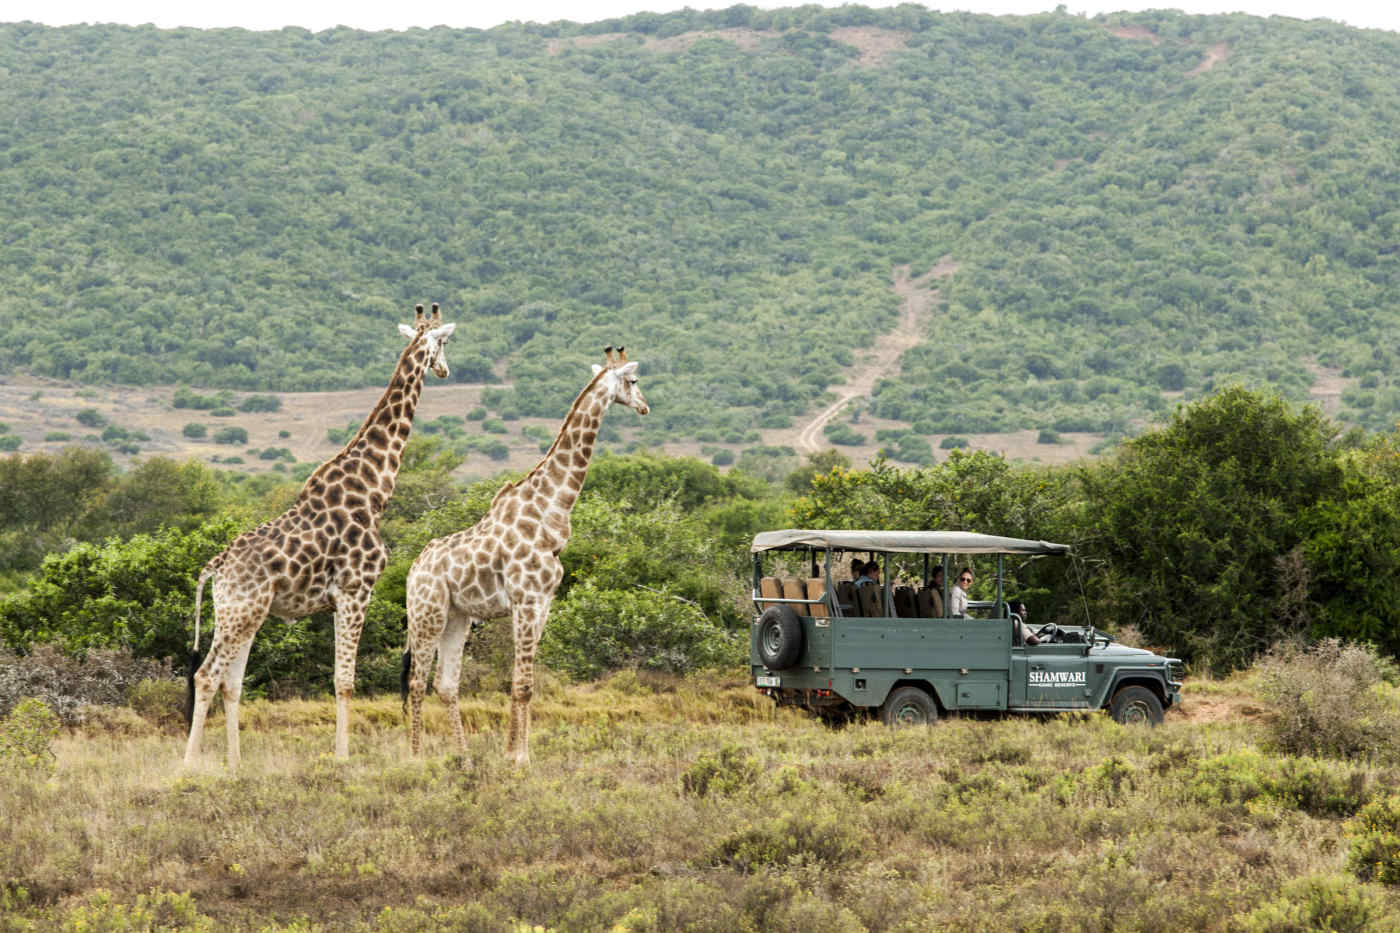 Safari in South Africa